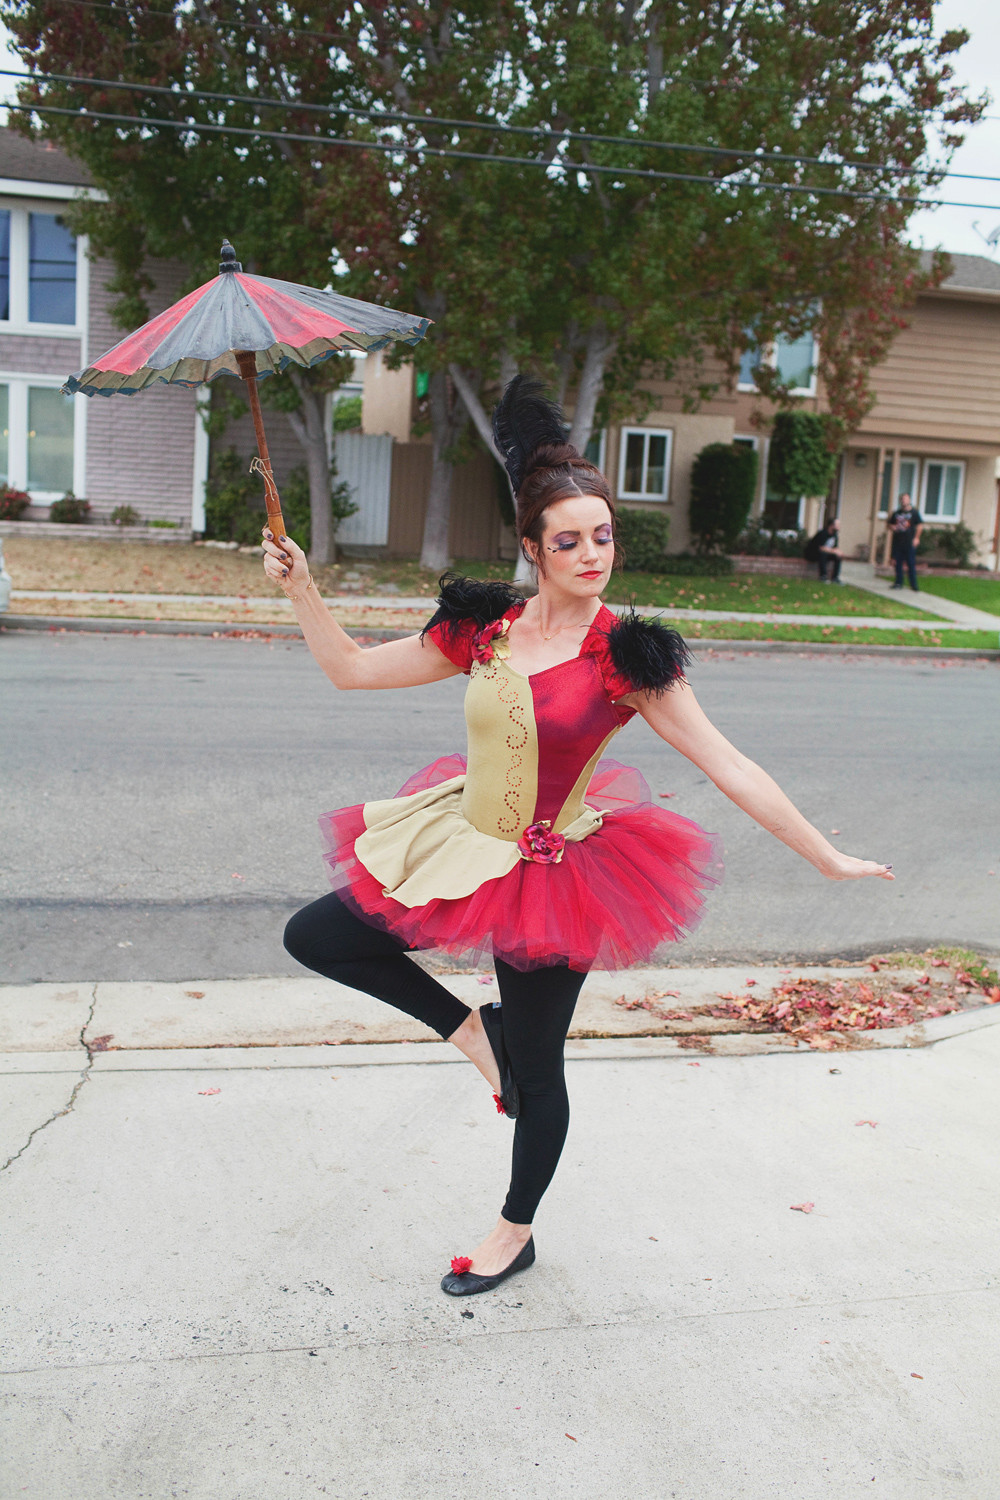 Best ideas about Circus Costumes DIY . Save or Pin LOVE CIRCUS HALLOWEEN COSTUMES Tell Love and Party Now.